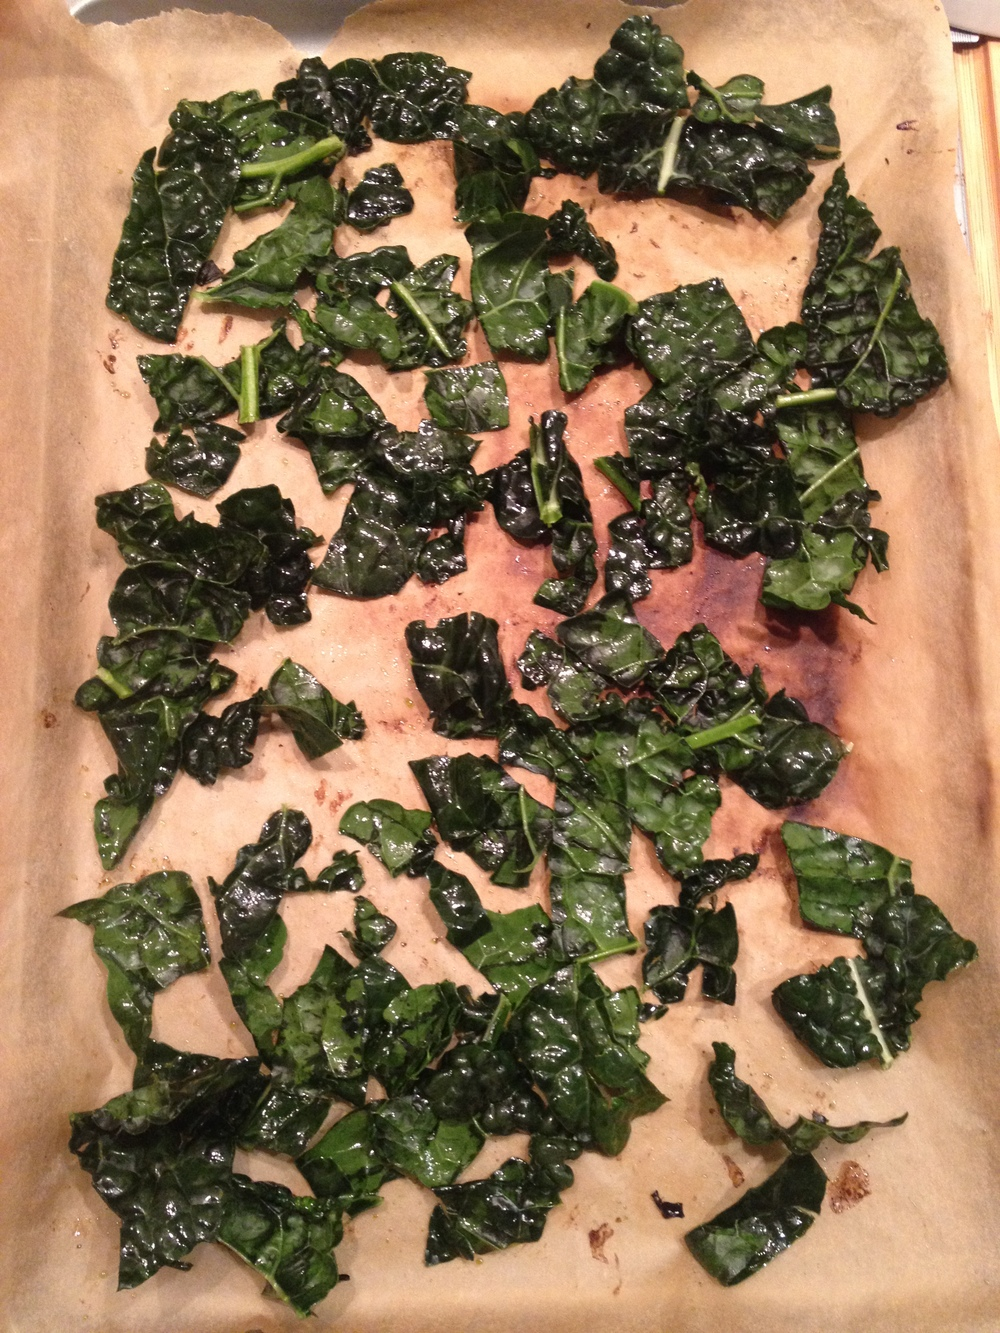 lemon-kale-chips.jpg